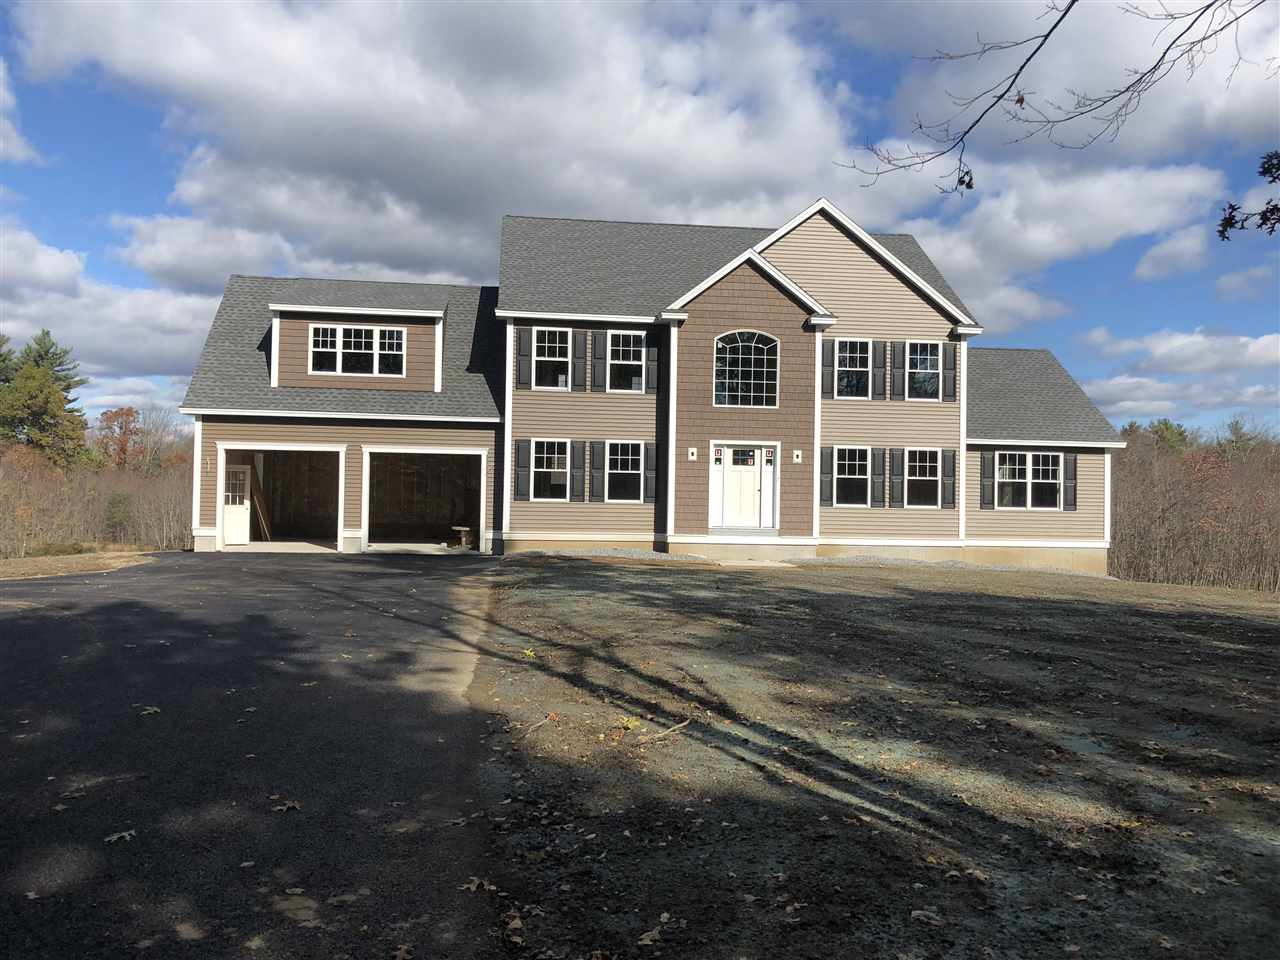 Photo of 40 Hayden Road Pelham NH 03076